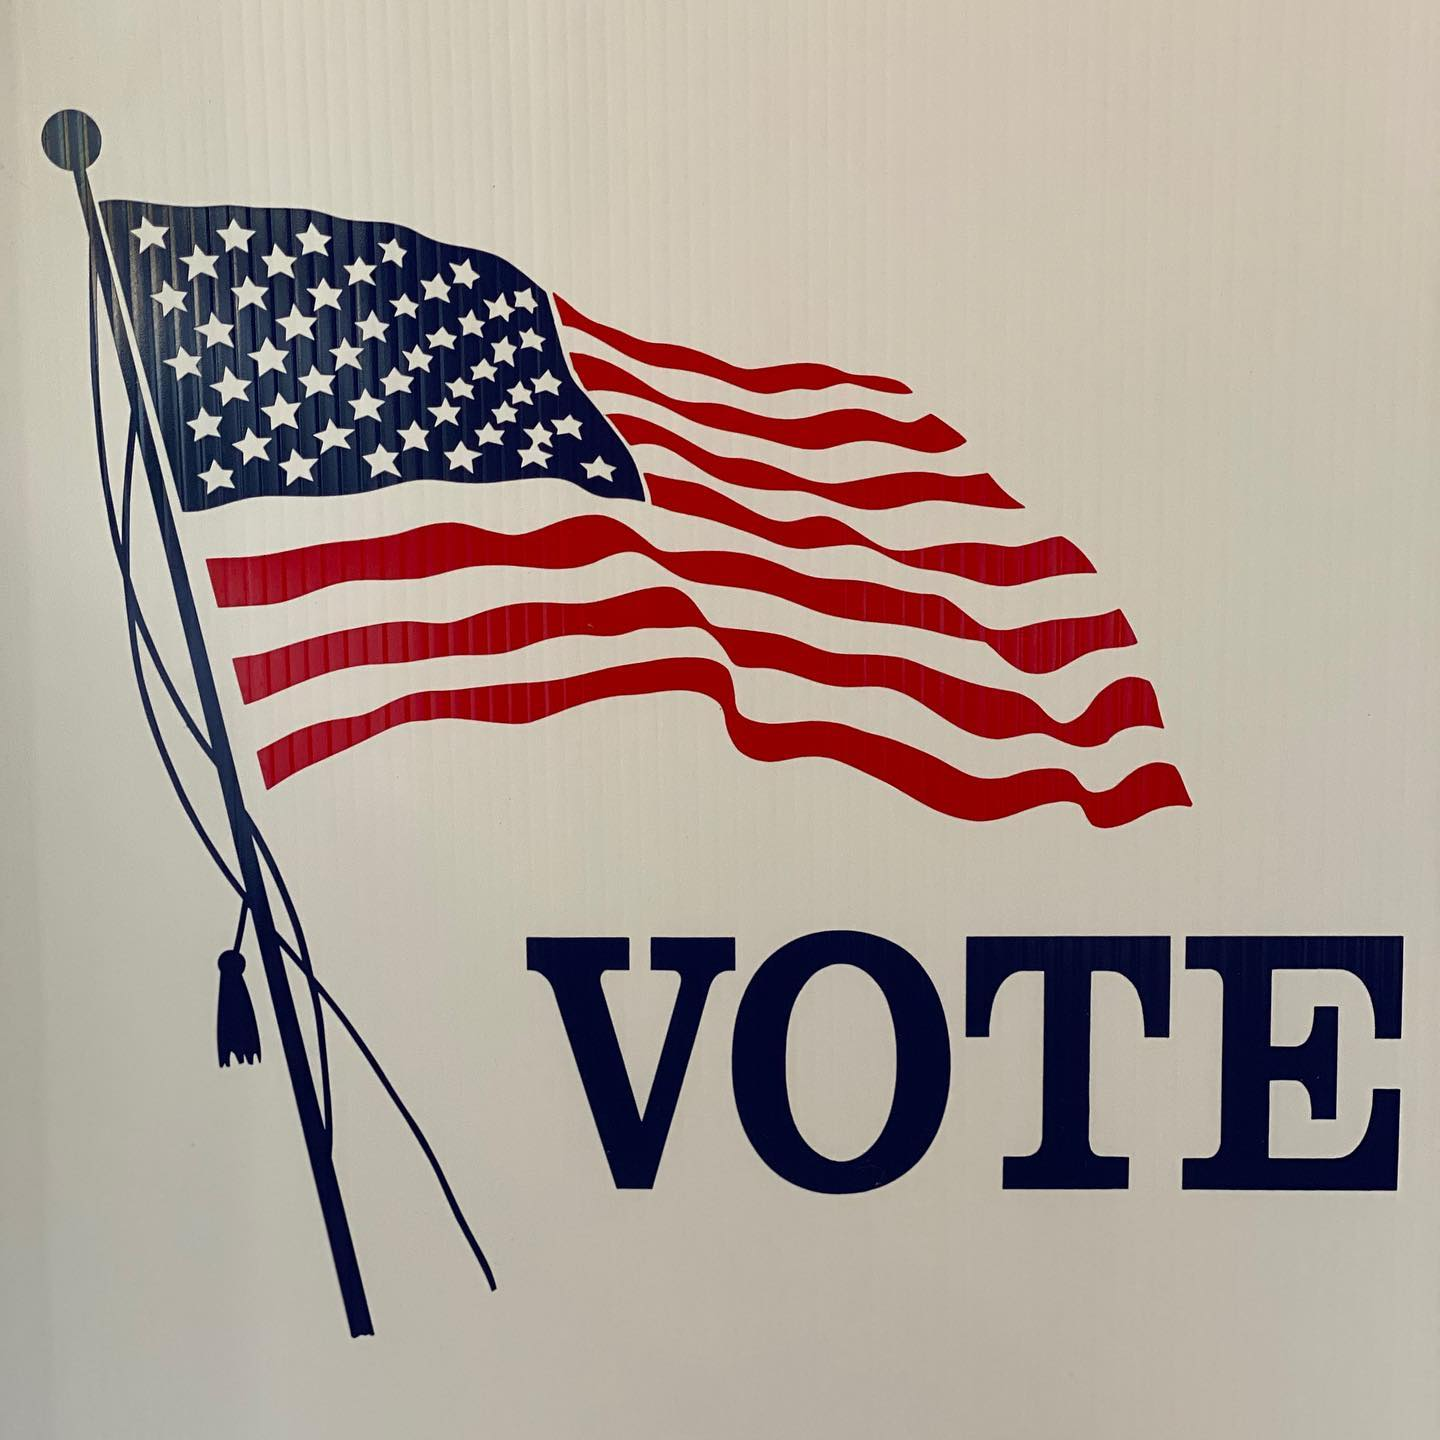 Clovis City Hall will serve as an in-person voting location